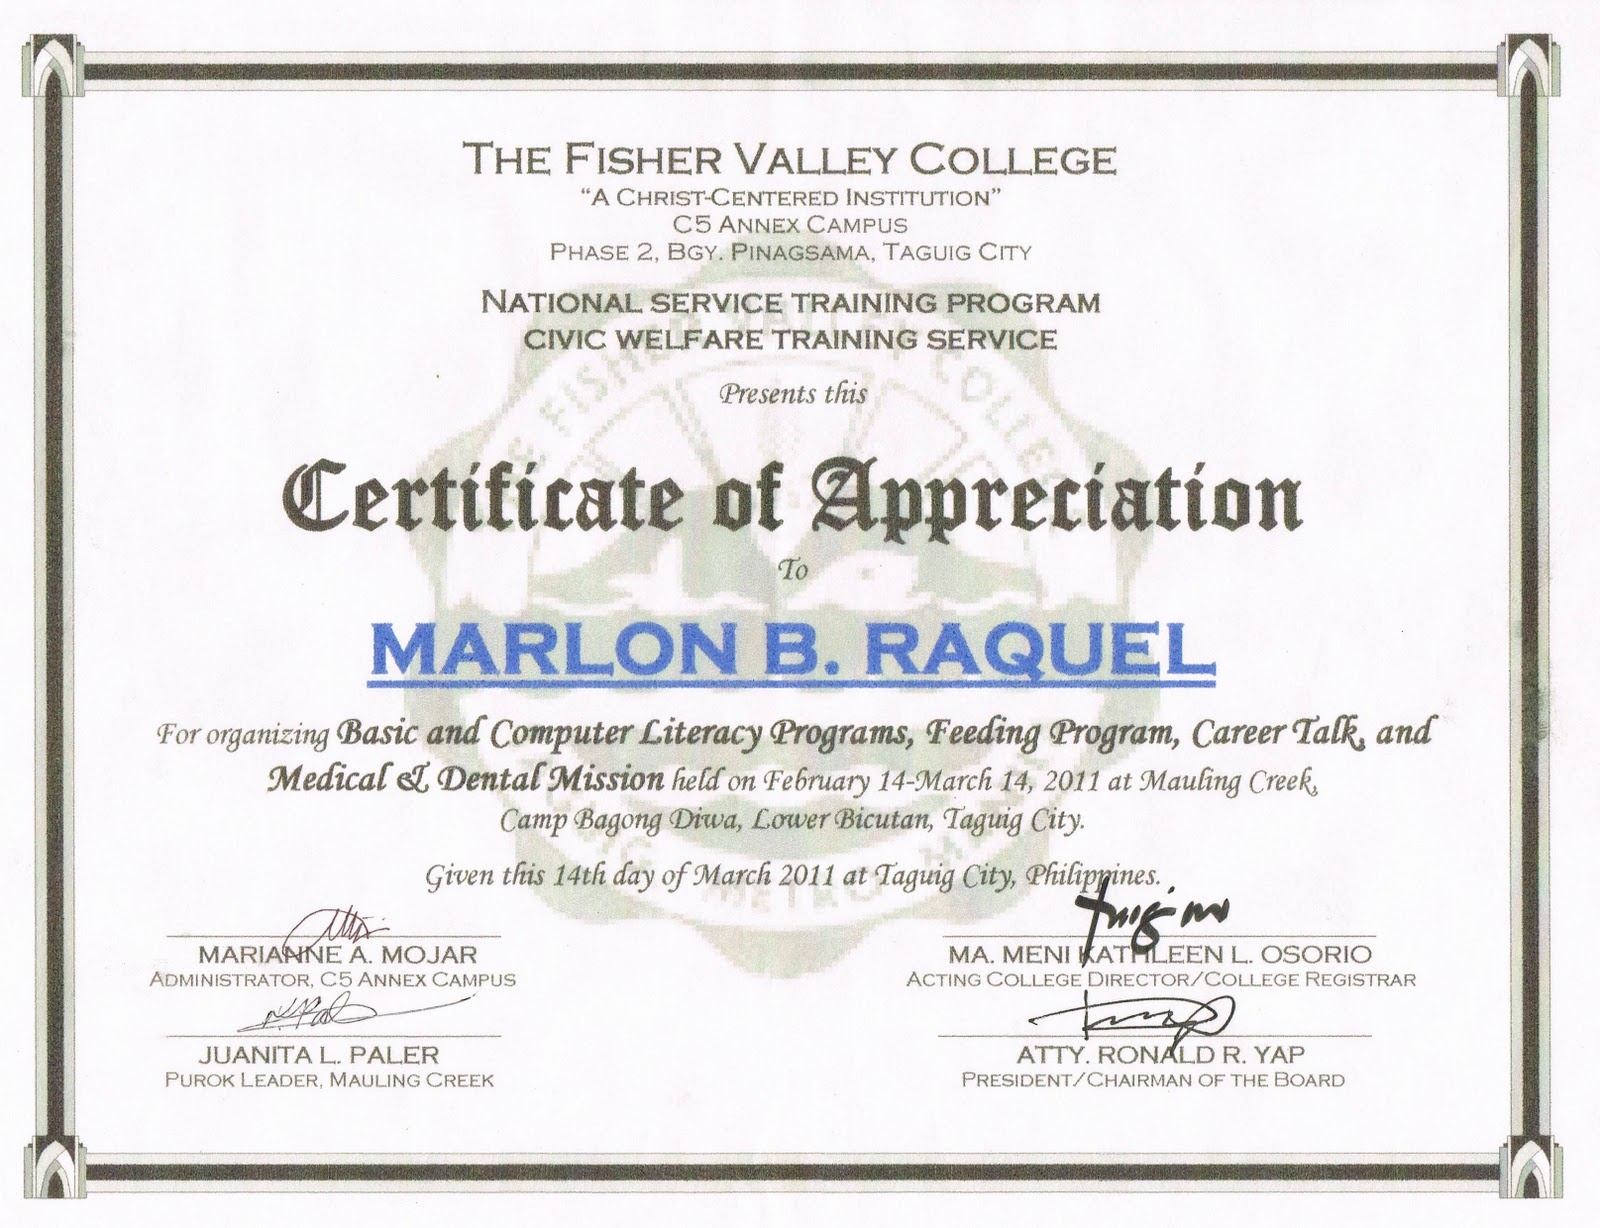 Certificate Of Appreciation Years Of Service | Search ...